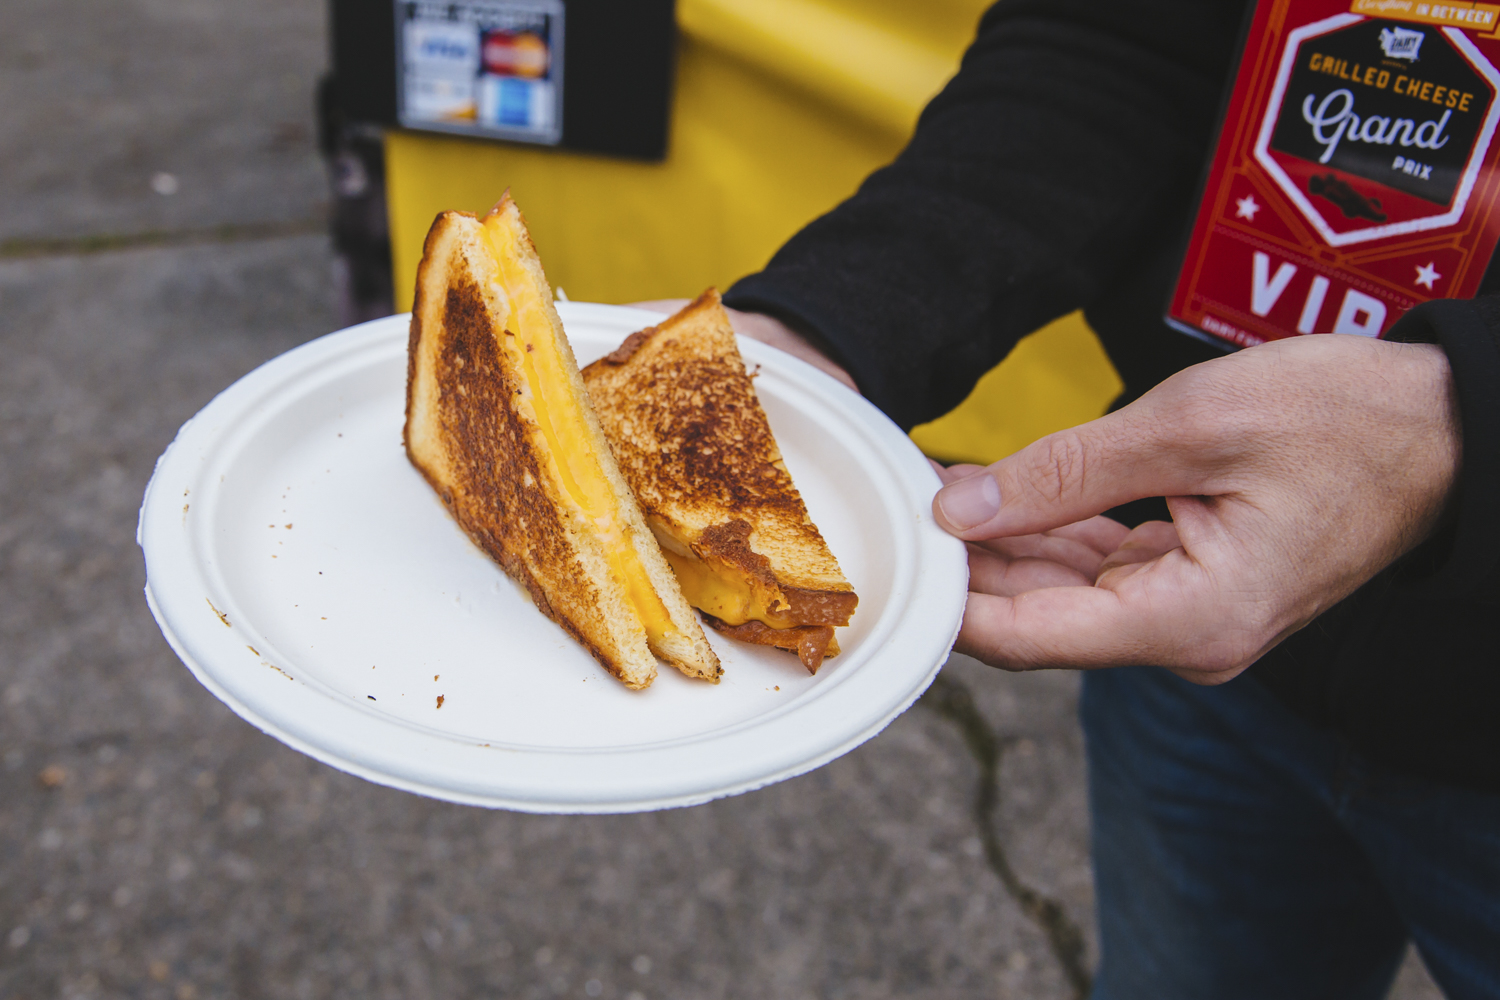 <p>&quot;O.G.&quot; from Island Grilled Cheese food truck. Seattle's annual Grilled Cheese Grand Prix event kicked off this weekend, properly celebrating April as National Grilled Cheese Month. We went, obviously (for work....) and here were the juiciest sammies on the block we could find. The good news? Pretty much all of these come from brick and mortar stores you can find any time in the city - not just April, and not just t the Grand Prix. (Image: Sunita Martini / Seattle Refined)</p>